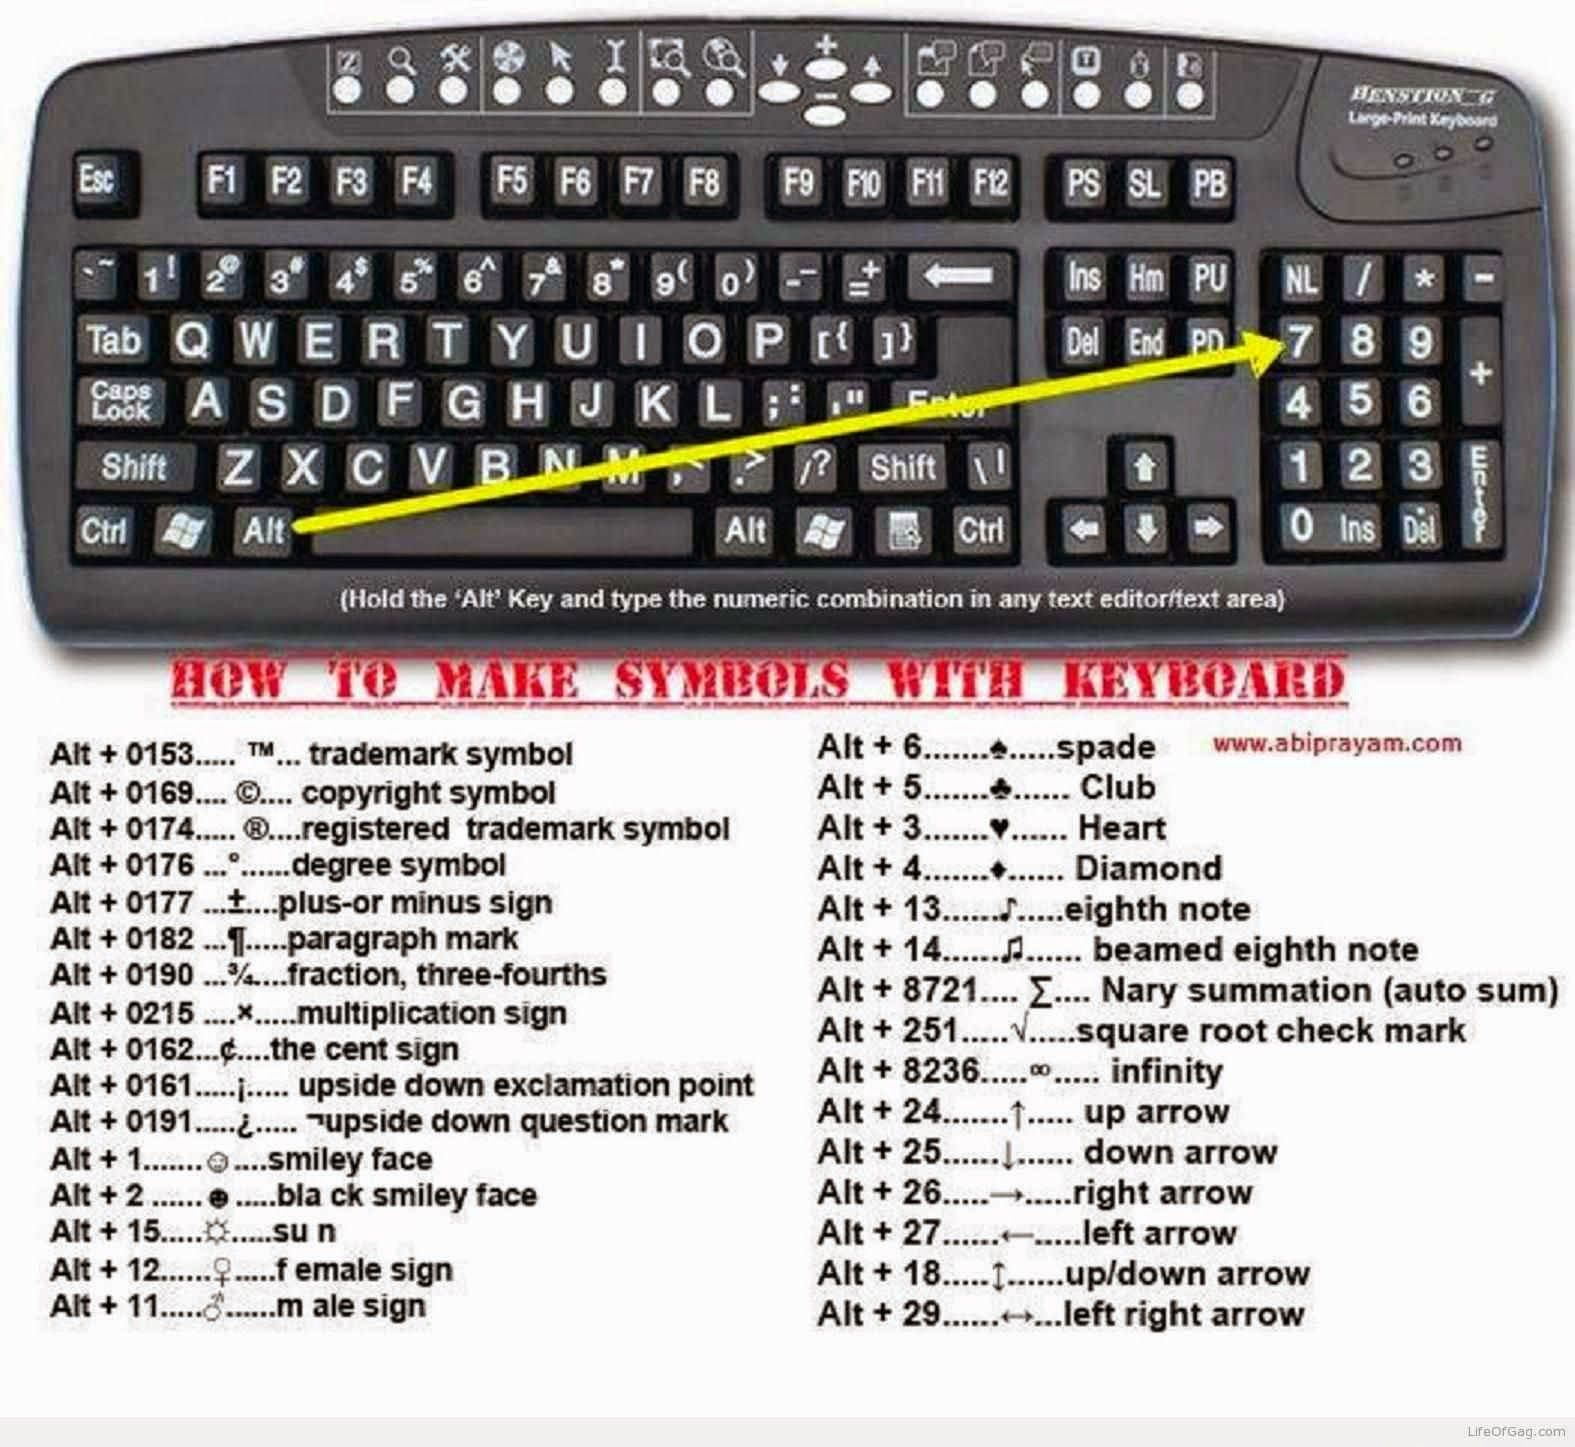 How to make symbols with keyboard electrical engineering world how to make symbols with keyboard electrical engineering world buycottarizona Images